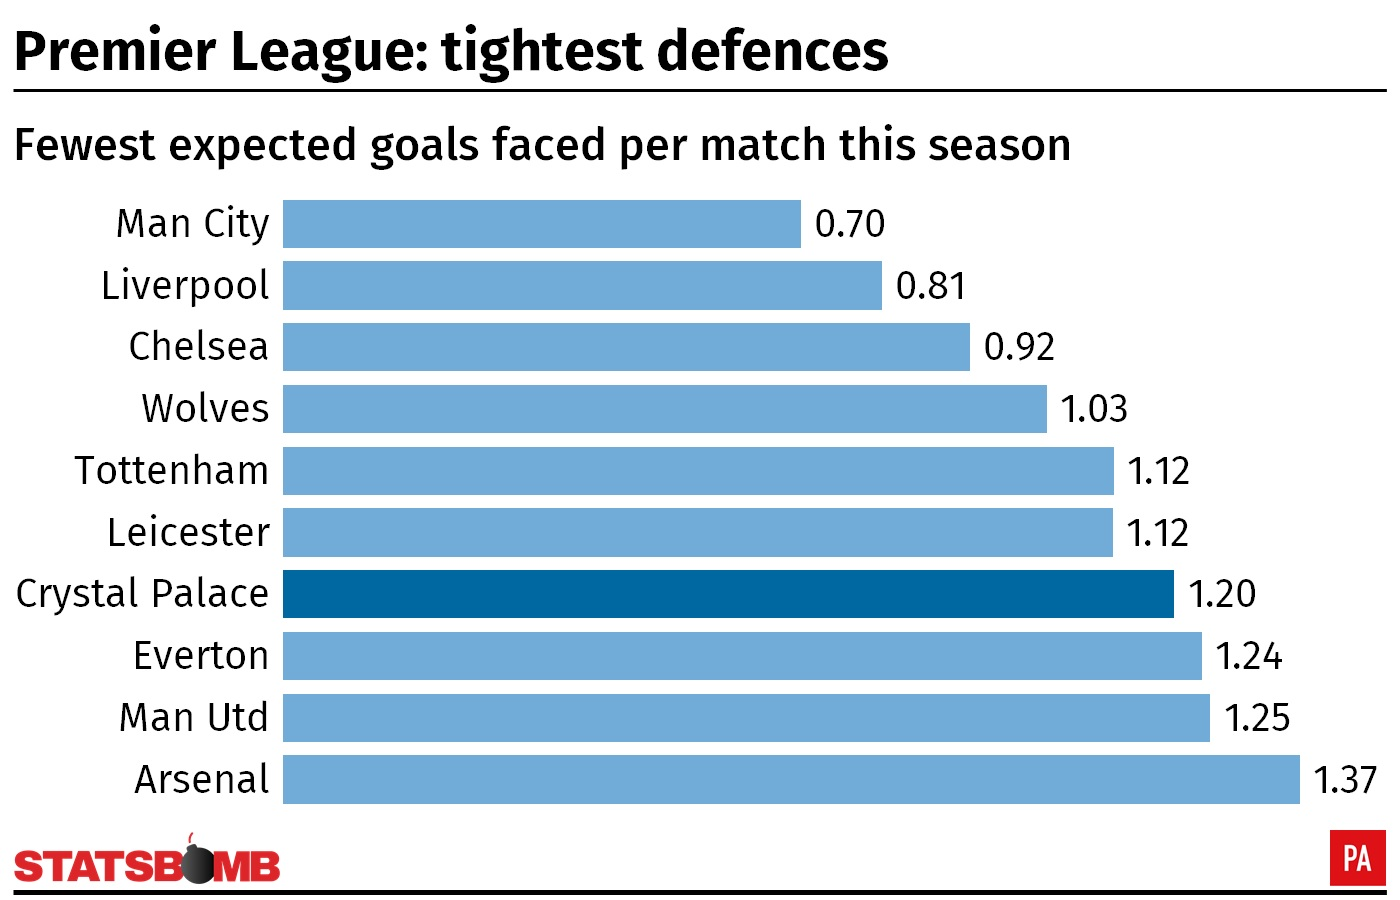 A graphic showing the expected goals faced per match for Premier League teams in the 2018/19 season